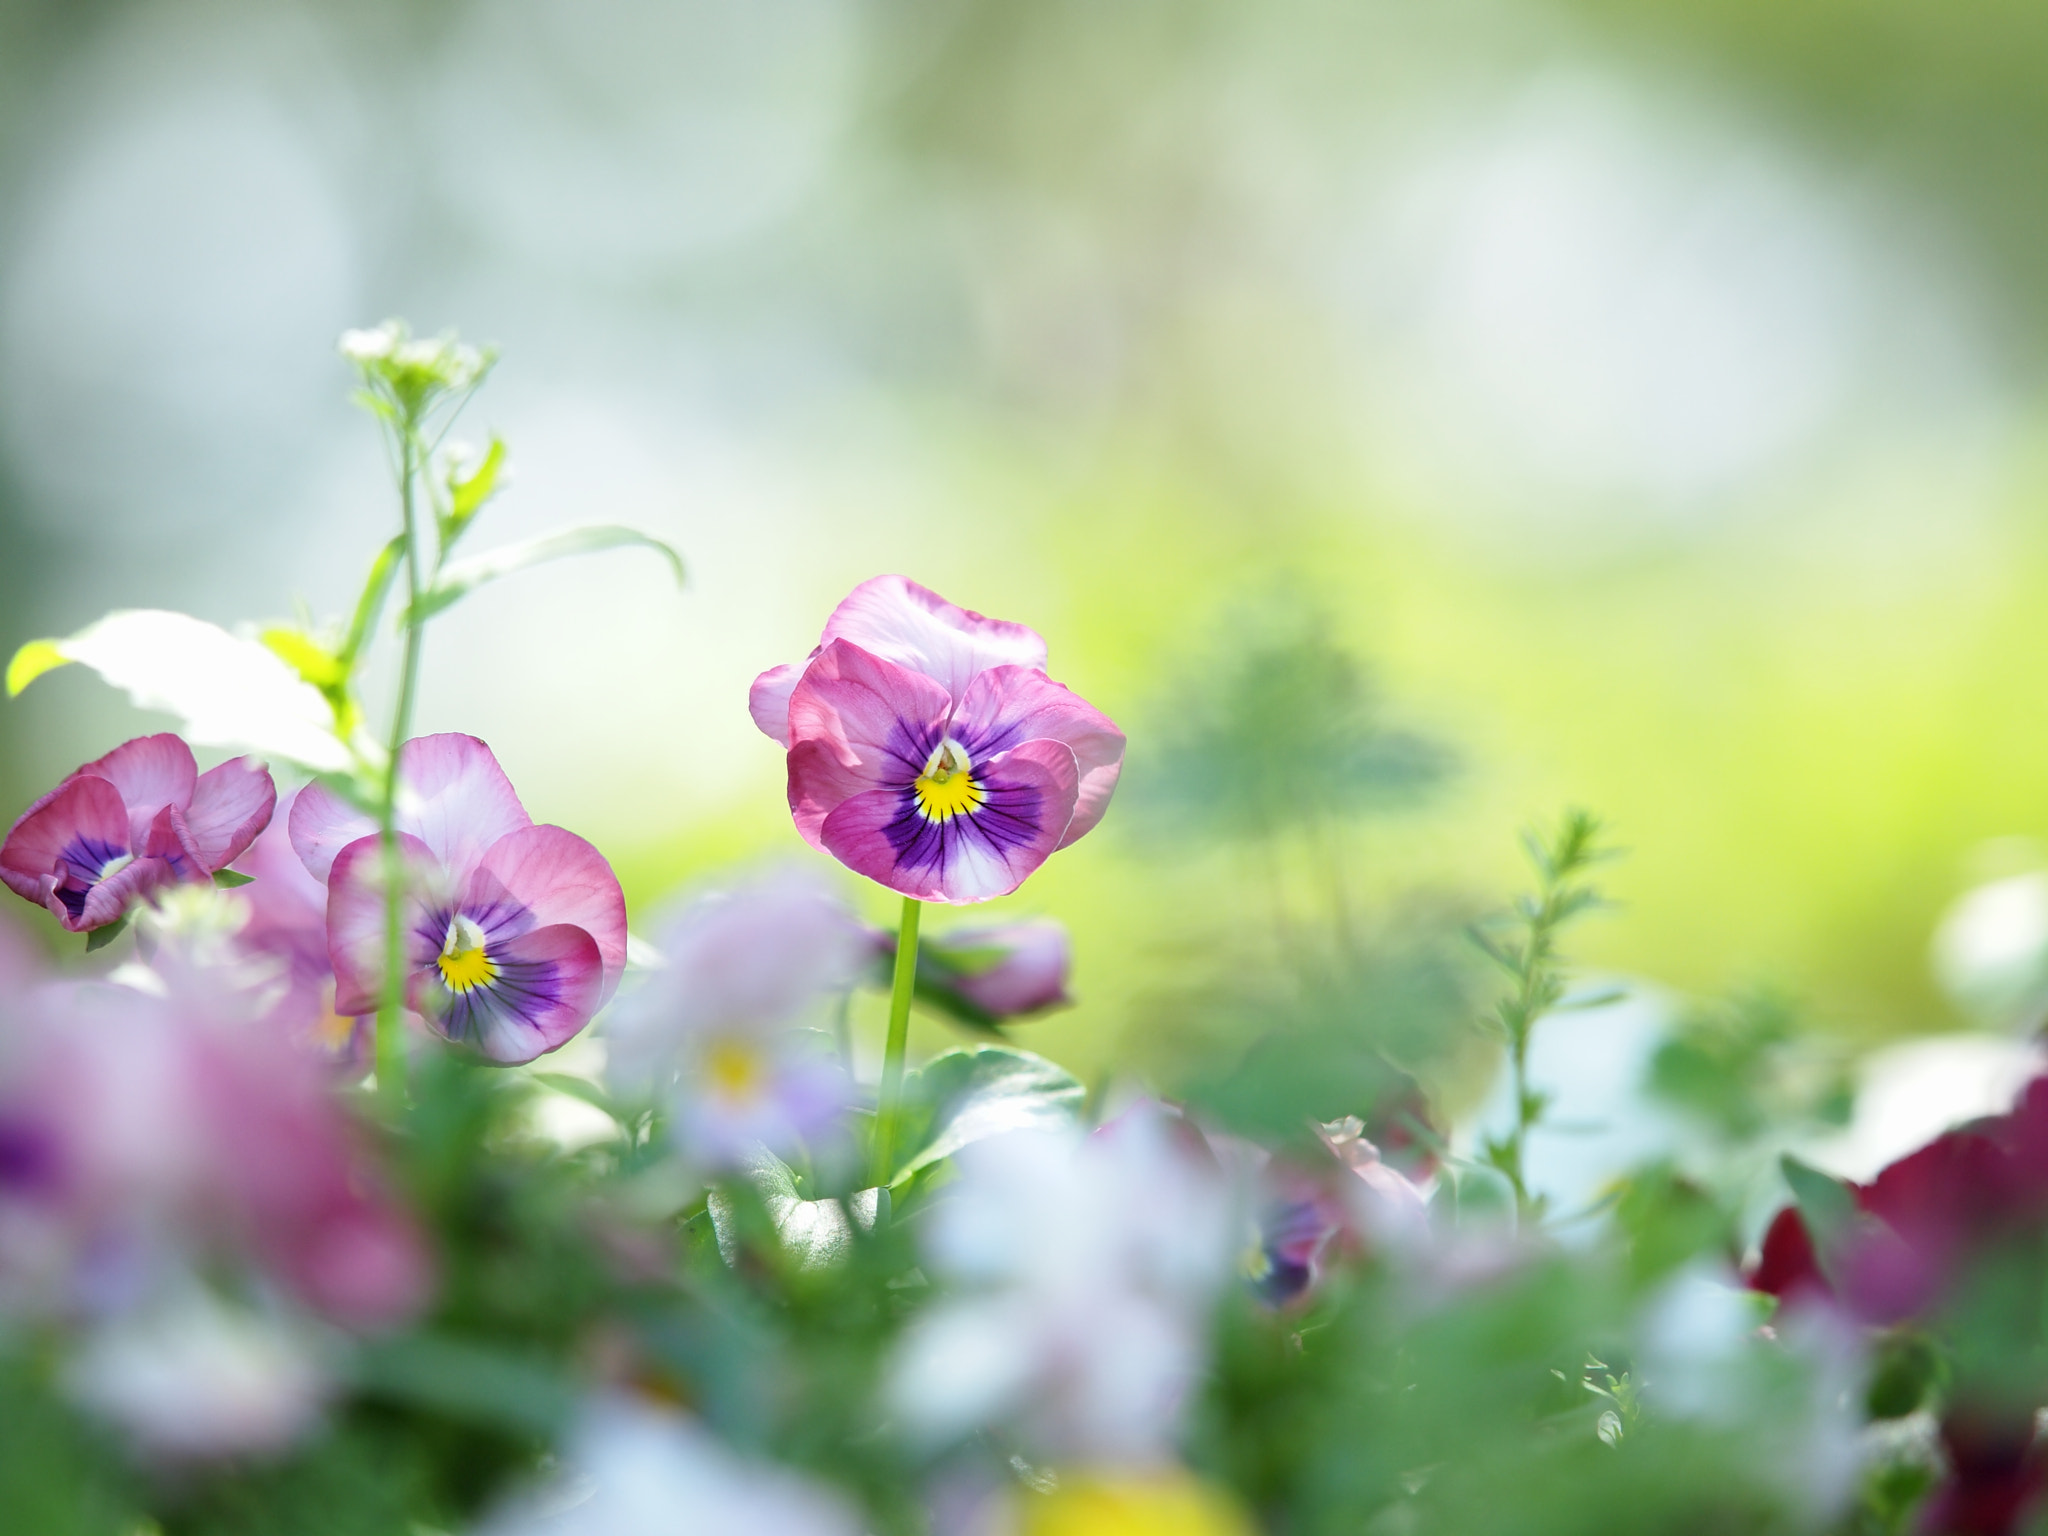 Photograph Colors of early summer #2 by Kaz Watanabe on 500px